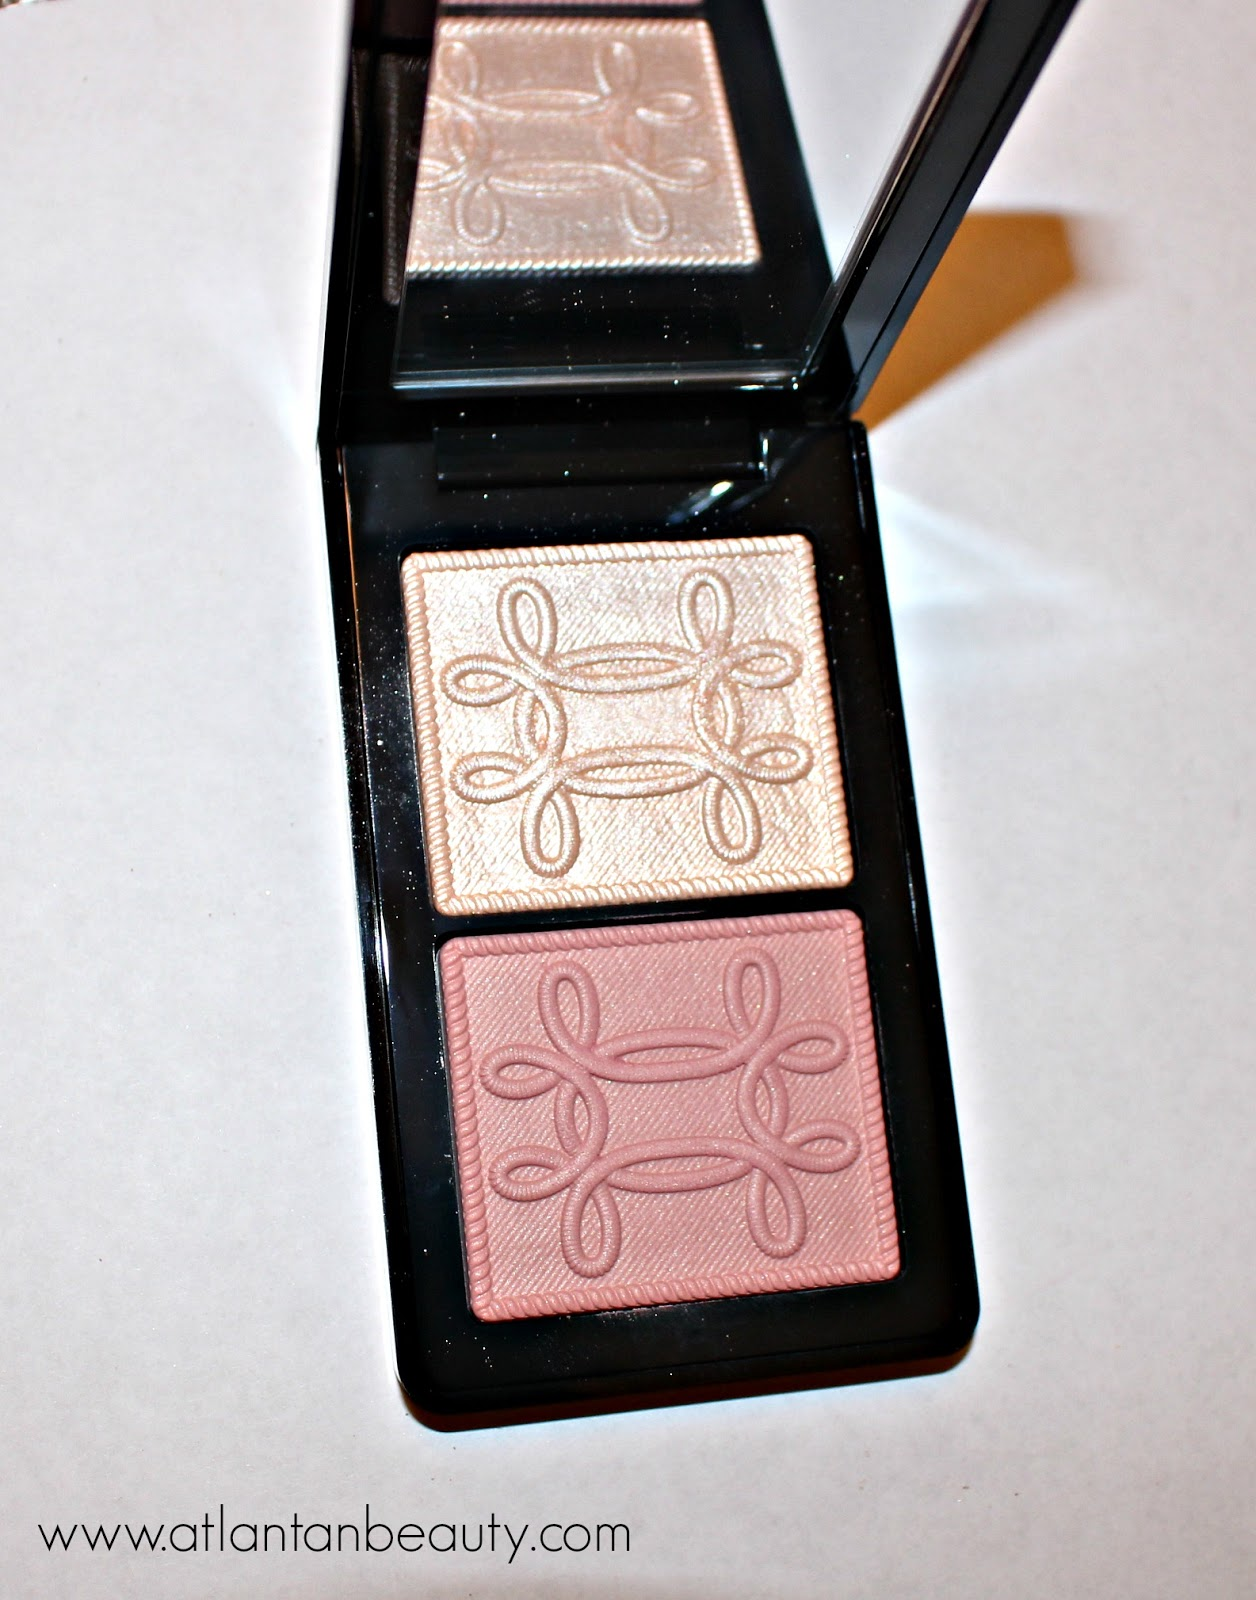 M.A.C. Sweet Peach Face Compact